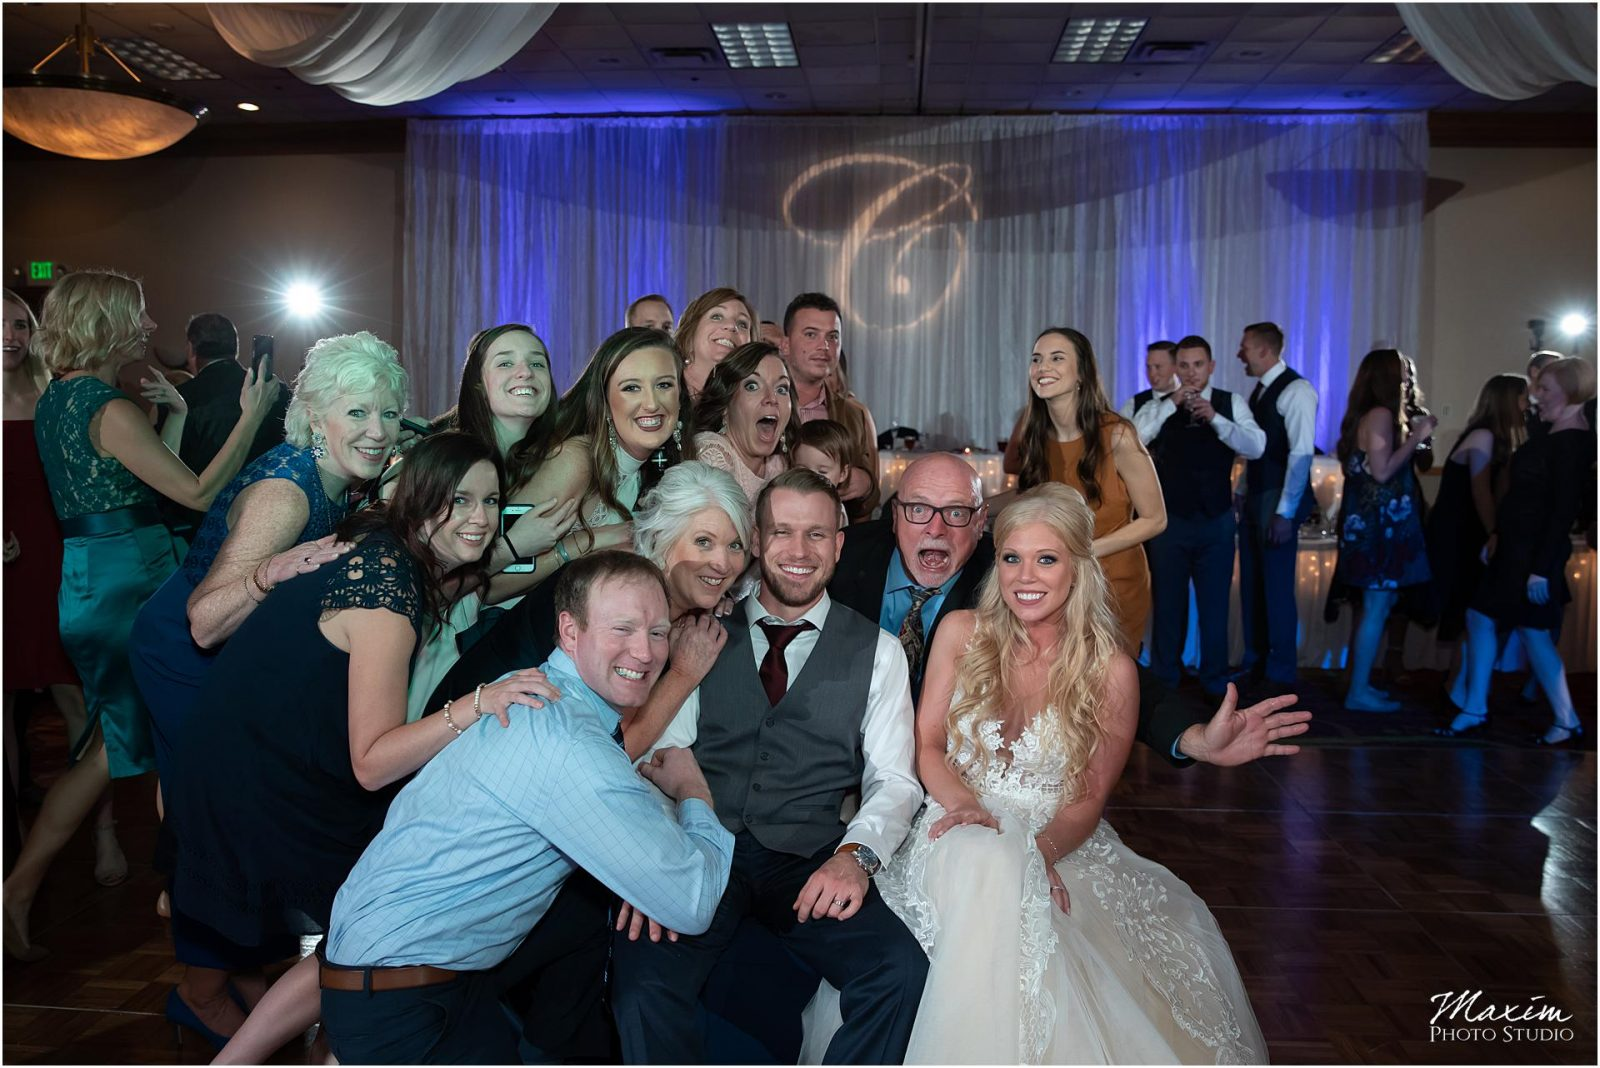 Holiday Inn Airport Wedding, Kentucky Wedding Photographer, Wedding Reception Photo Bomb